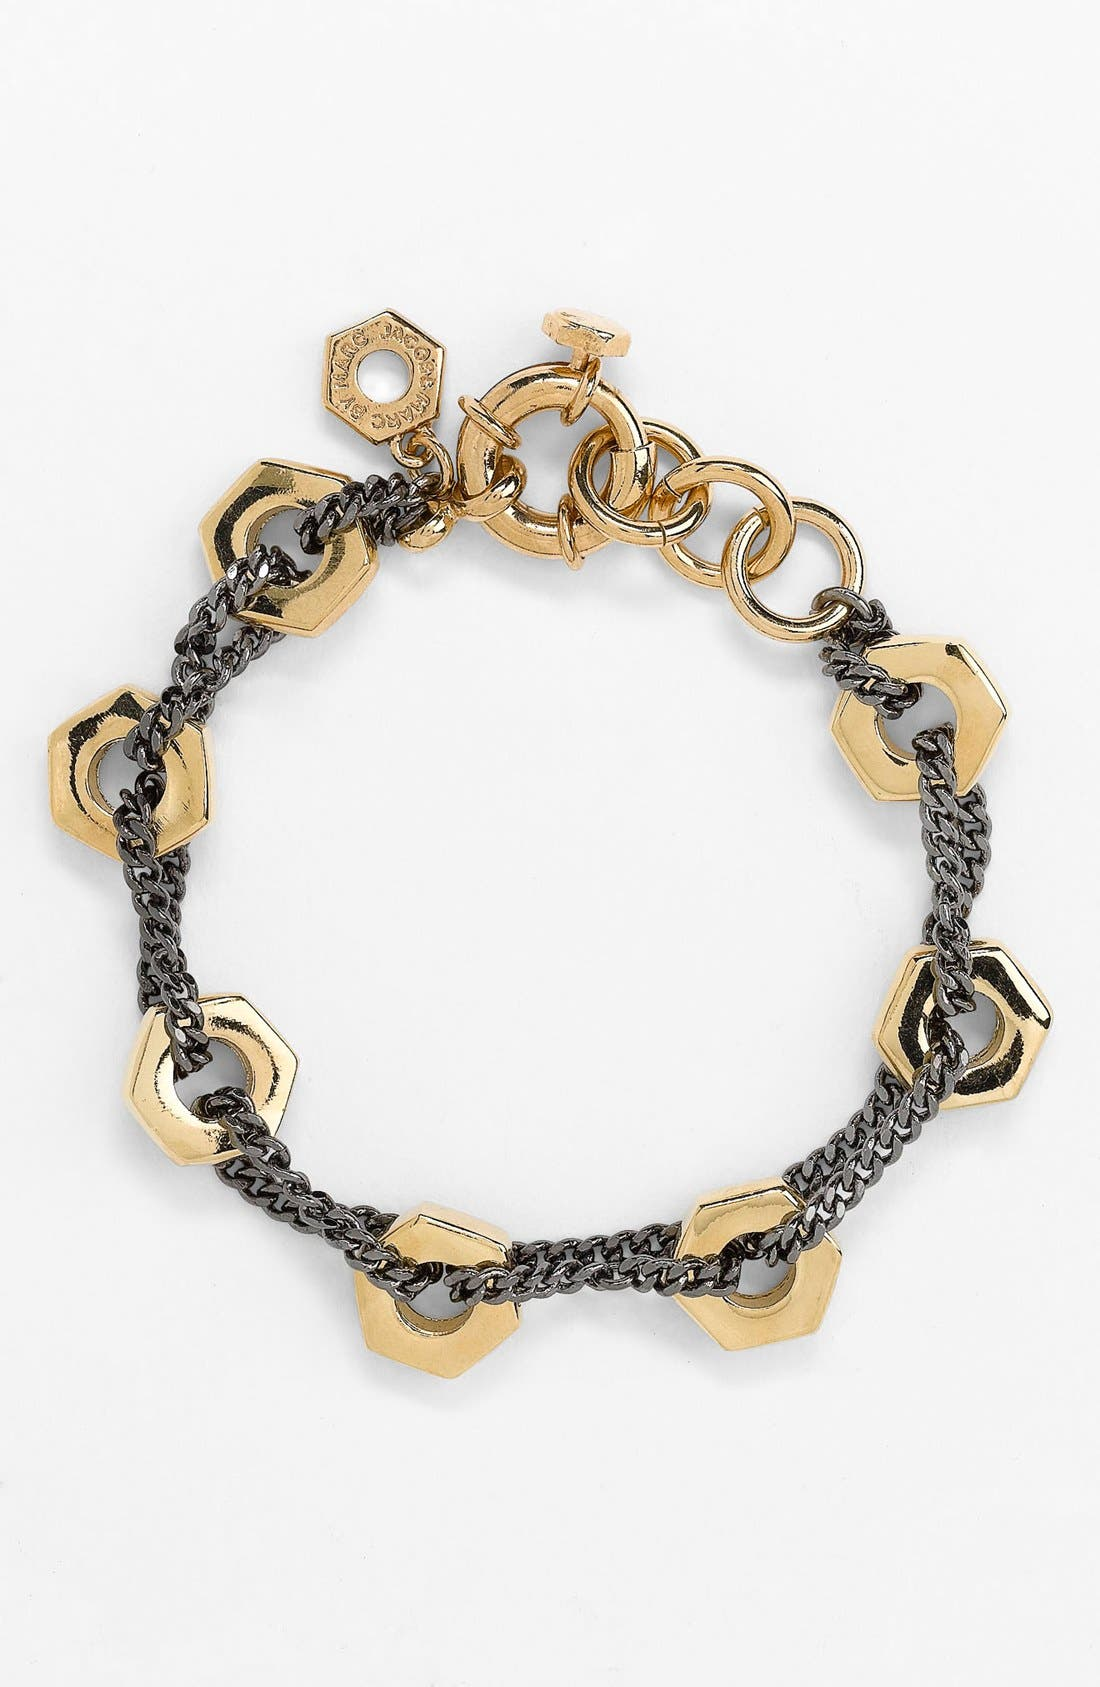 Main Image - MARC BY MARC JACOBS 'Bolts' Two Tone Link Bracelet